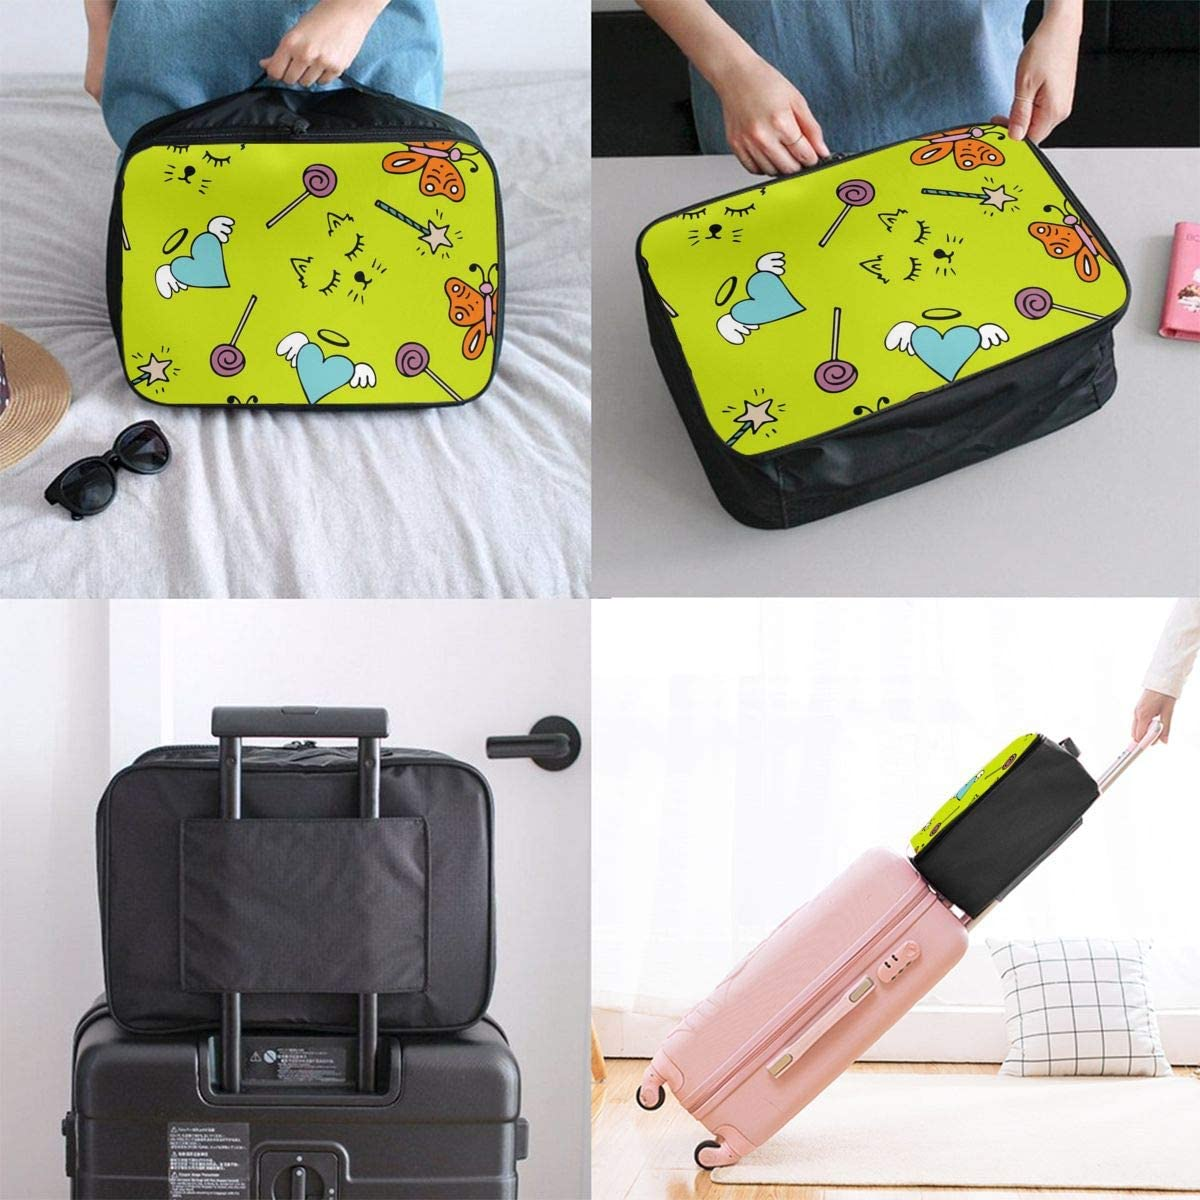 Yunshm Butterflies Love Lollipops And Other Items Customized Trolley Handbag Waterproof Unisex Large Capacity For Business Travel Storage